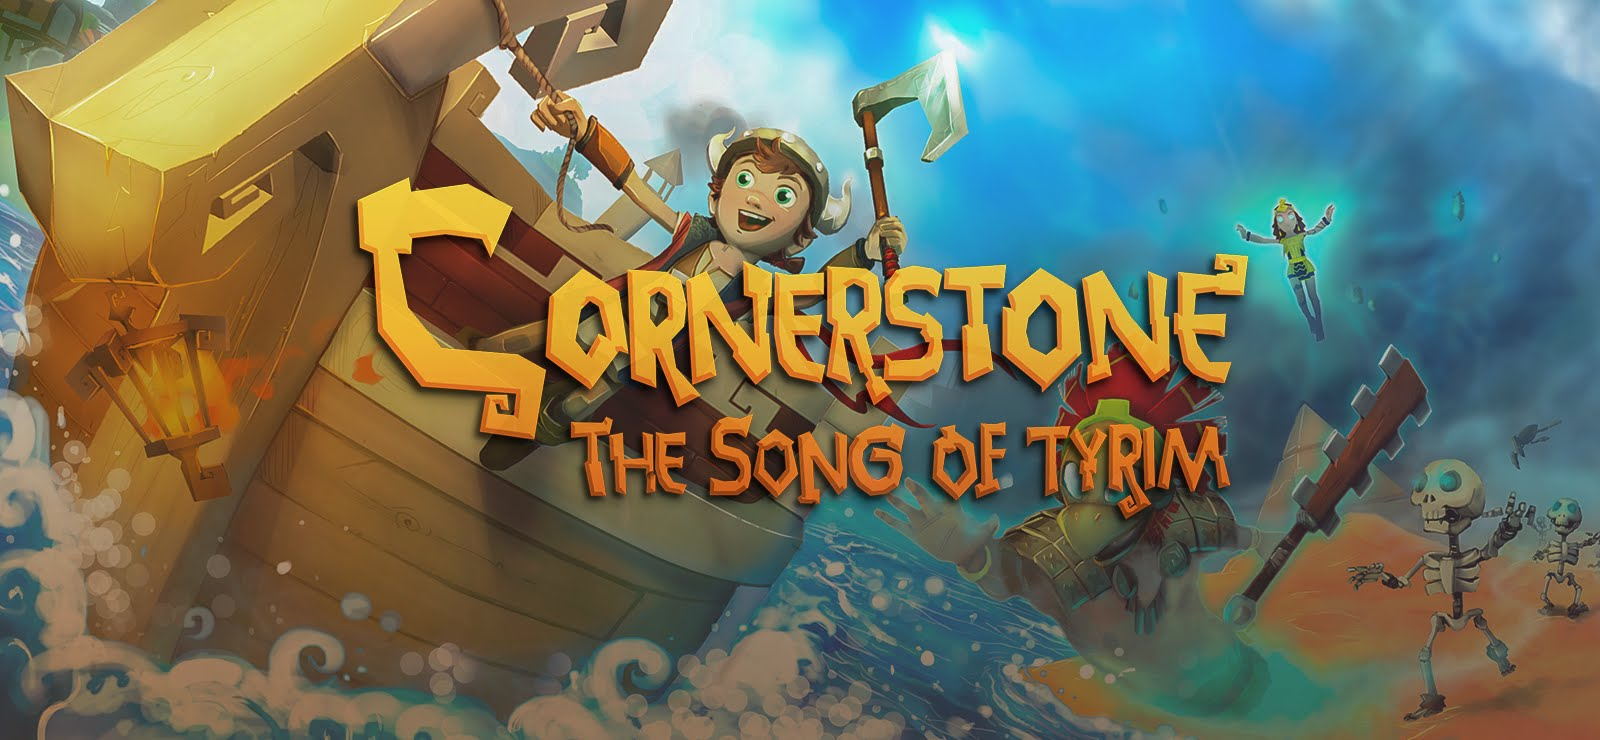 Cornerstone The Song of Tyrim Free Download